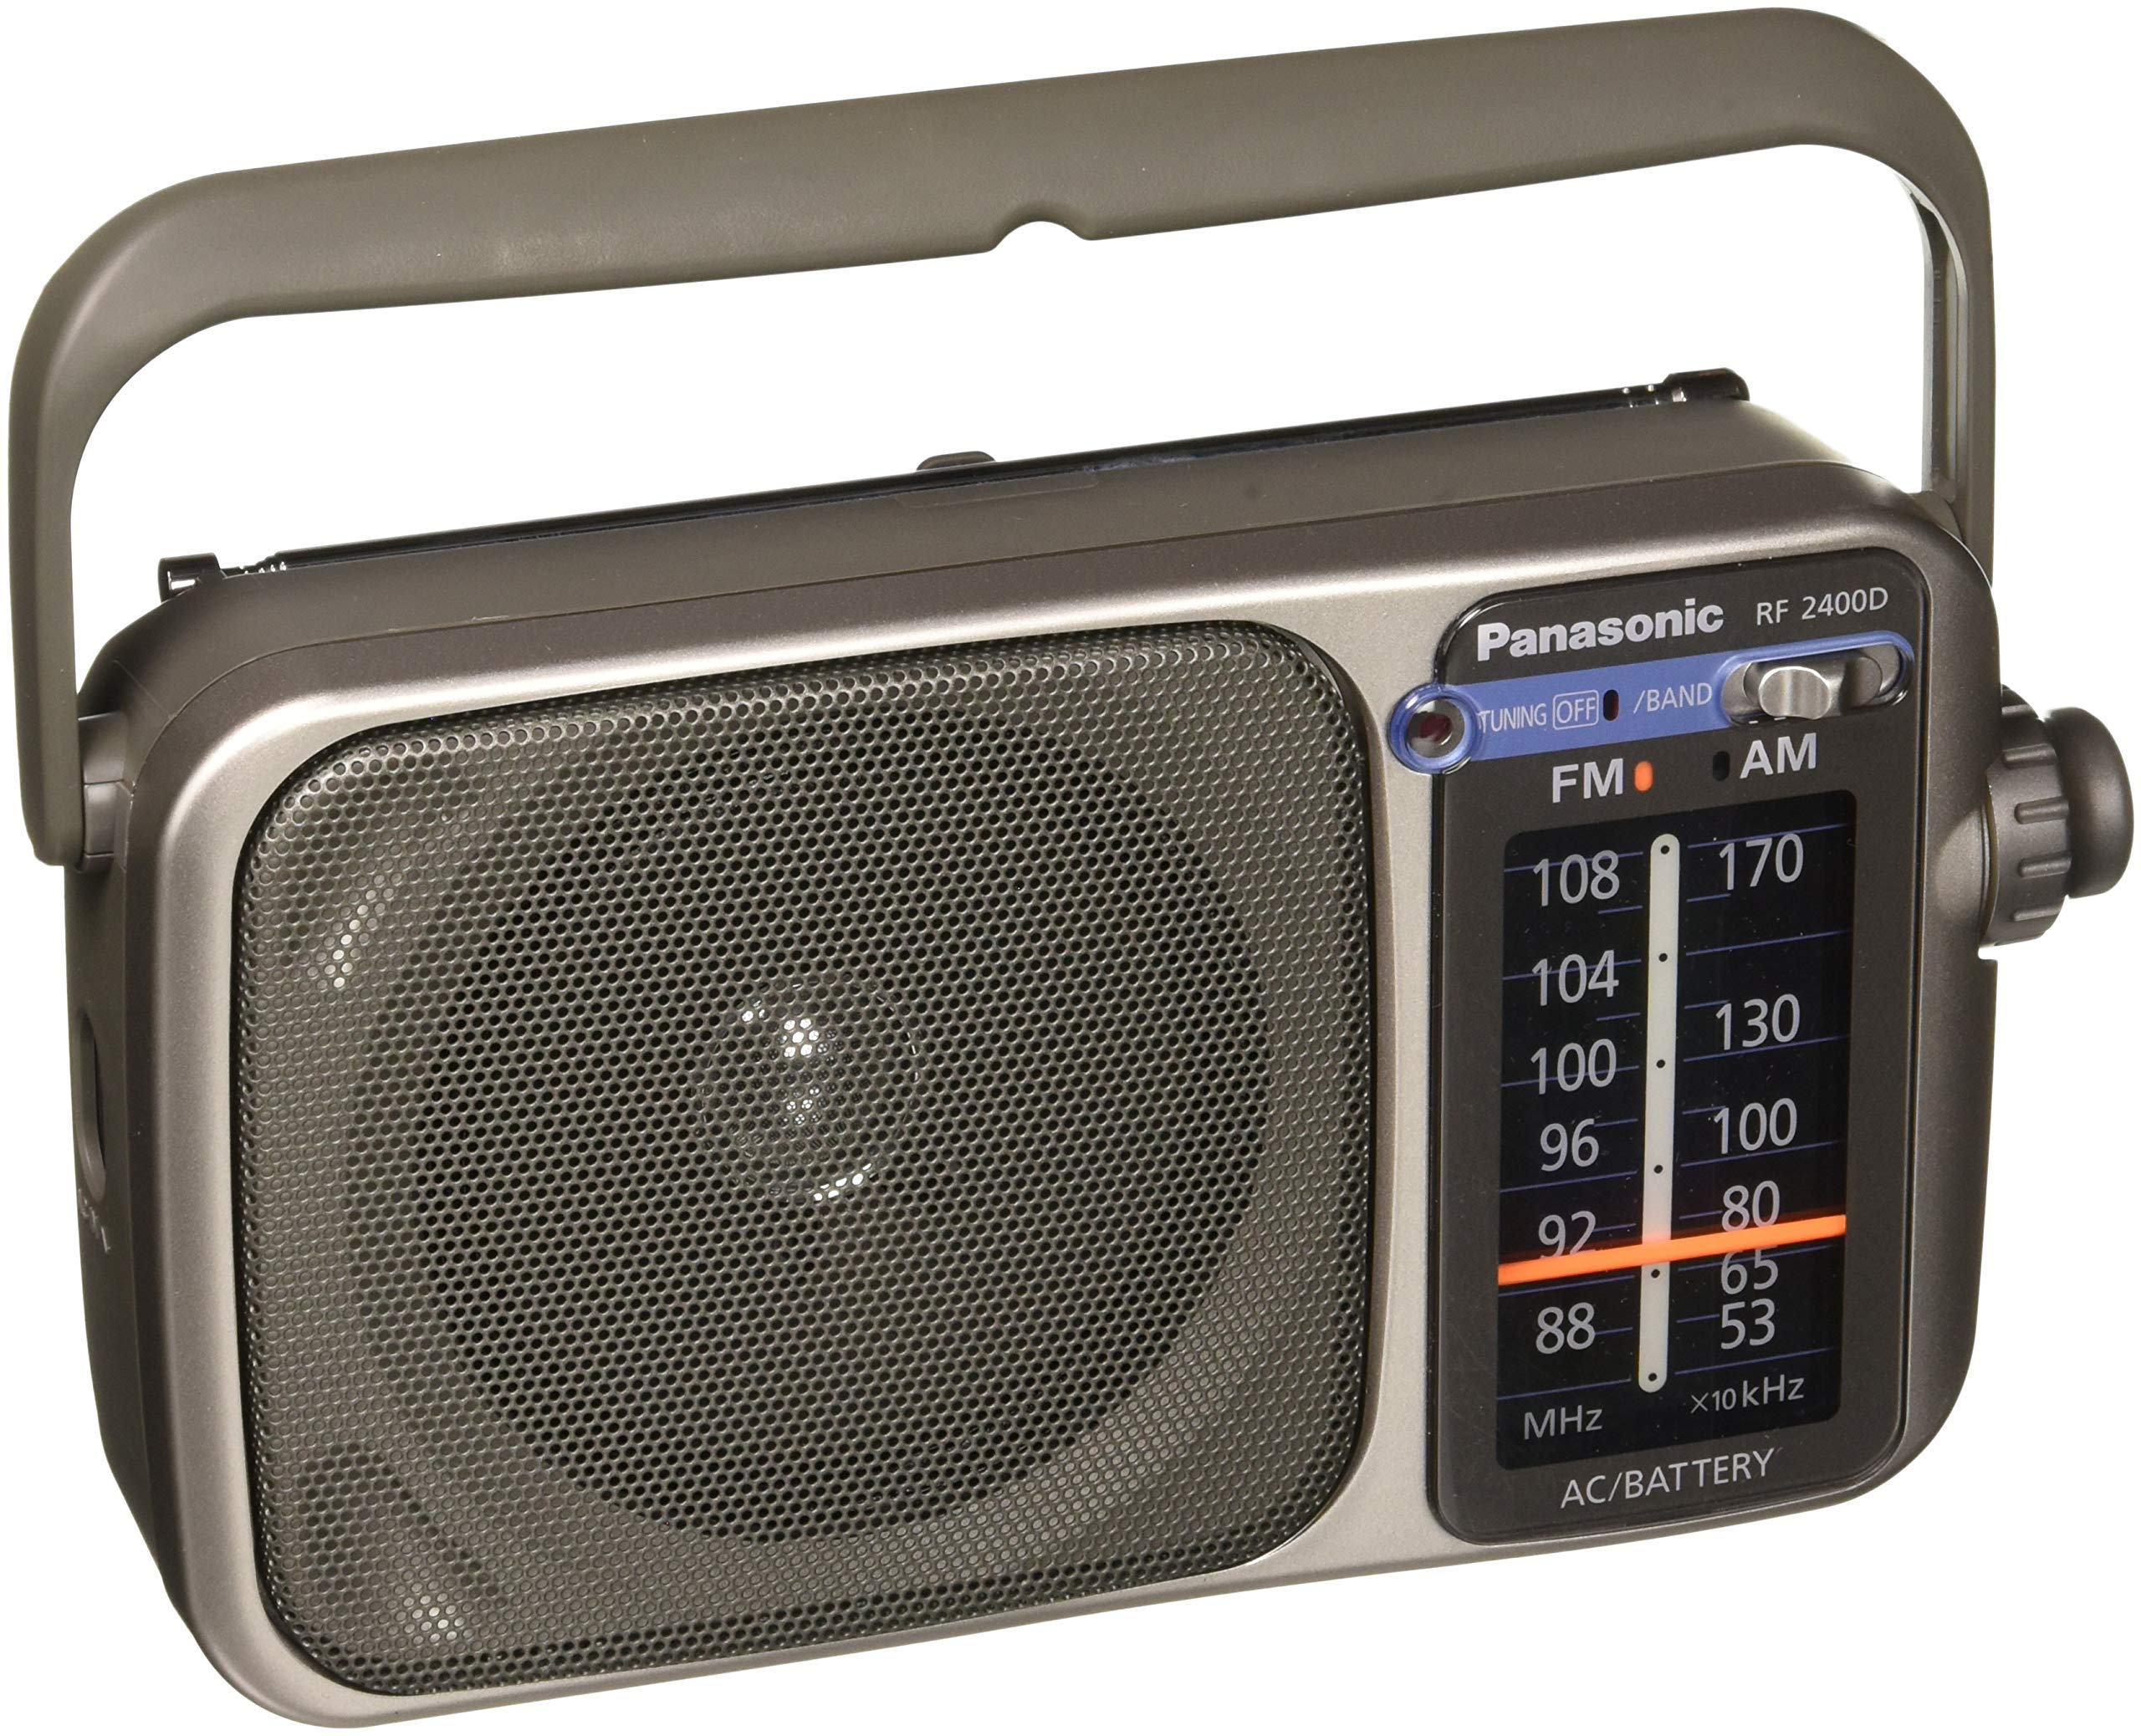 Panasonic RF-2400D AM / FM Radio, Silver (Renewed)